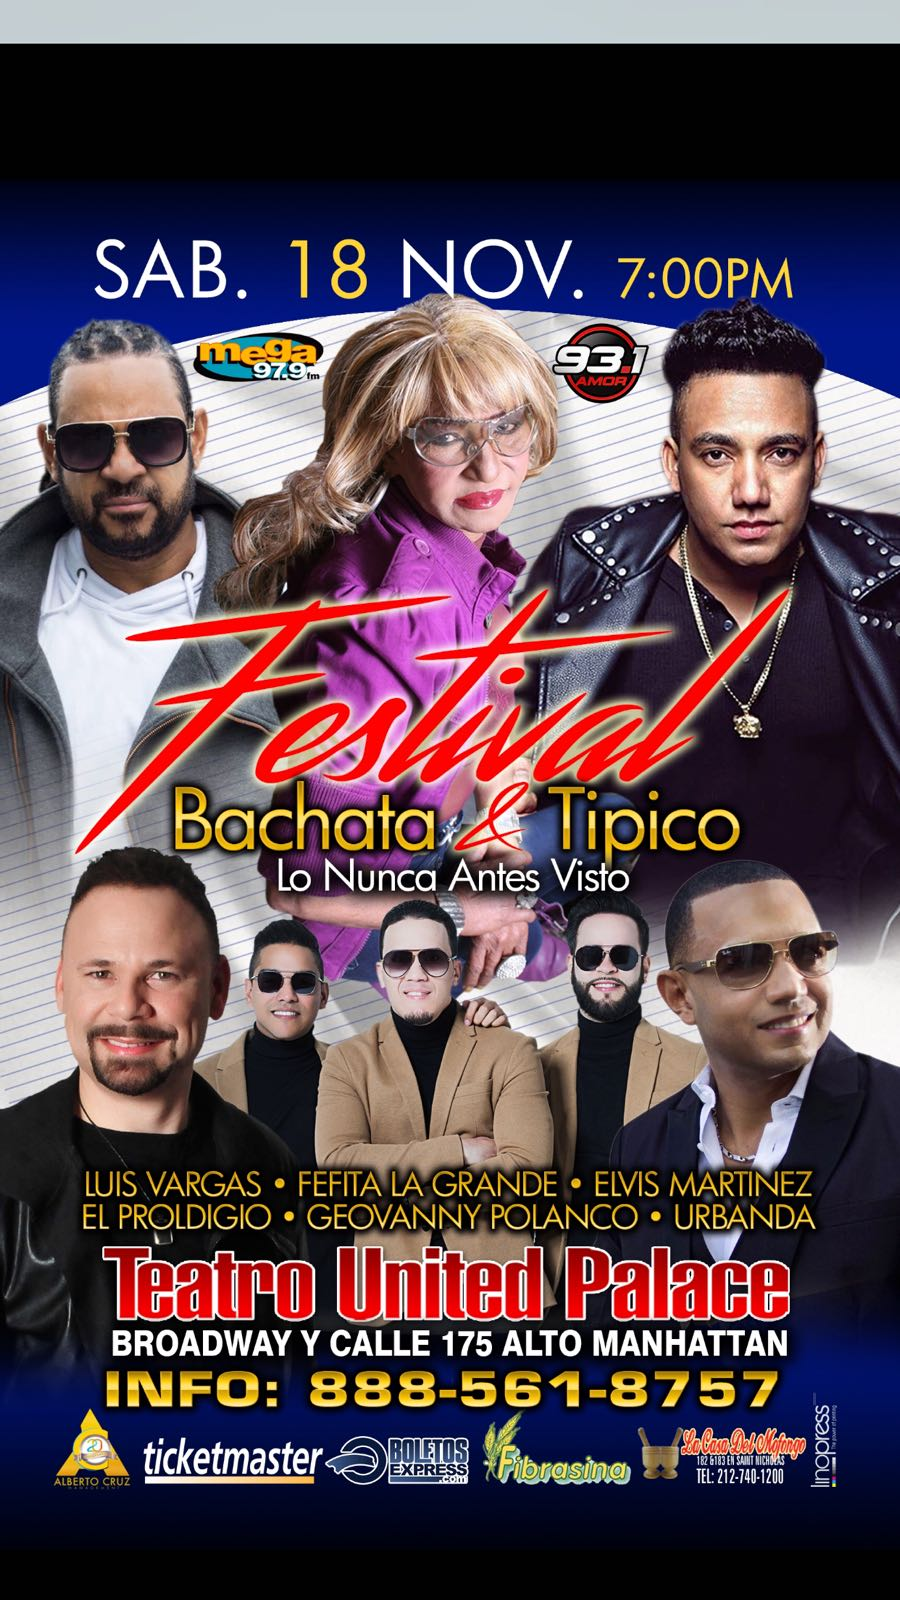 FESTIVAL BACHATA Y TIPICO / UNITED PALACE DE NEW YORK